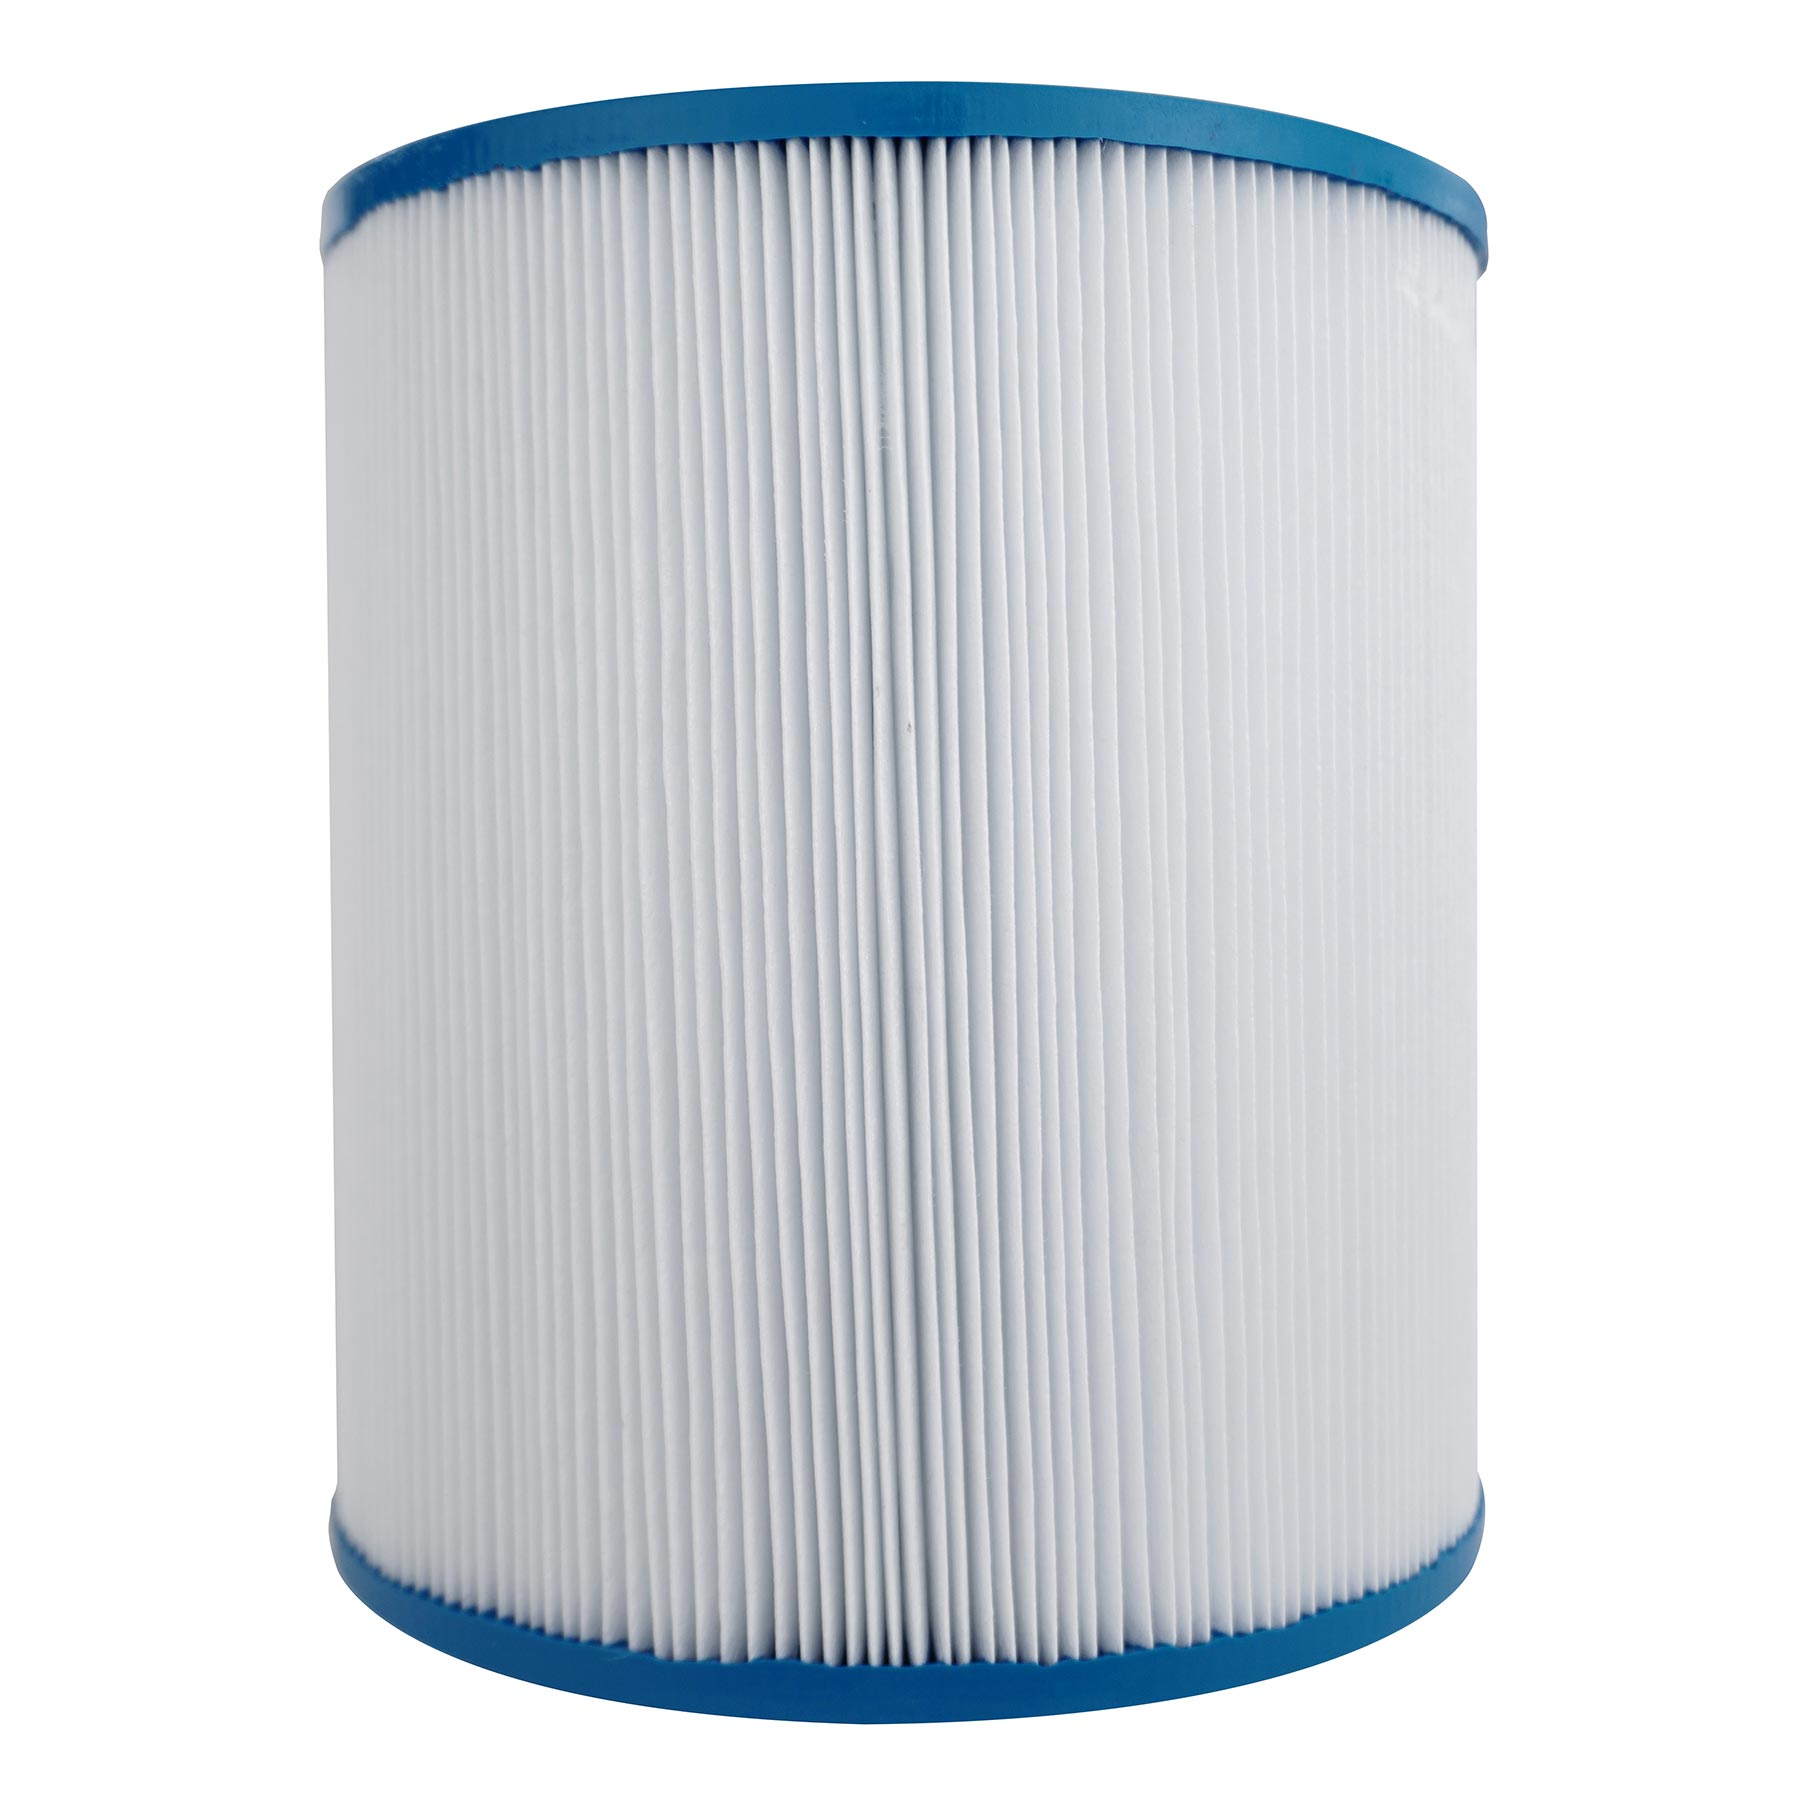 Replaces Unicel 7CH-322, Pleatco PAS35-F2M • Pool & Spa Filter Cartridge-Filter Cartridge-FilterDeal.com